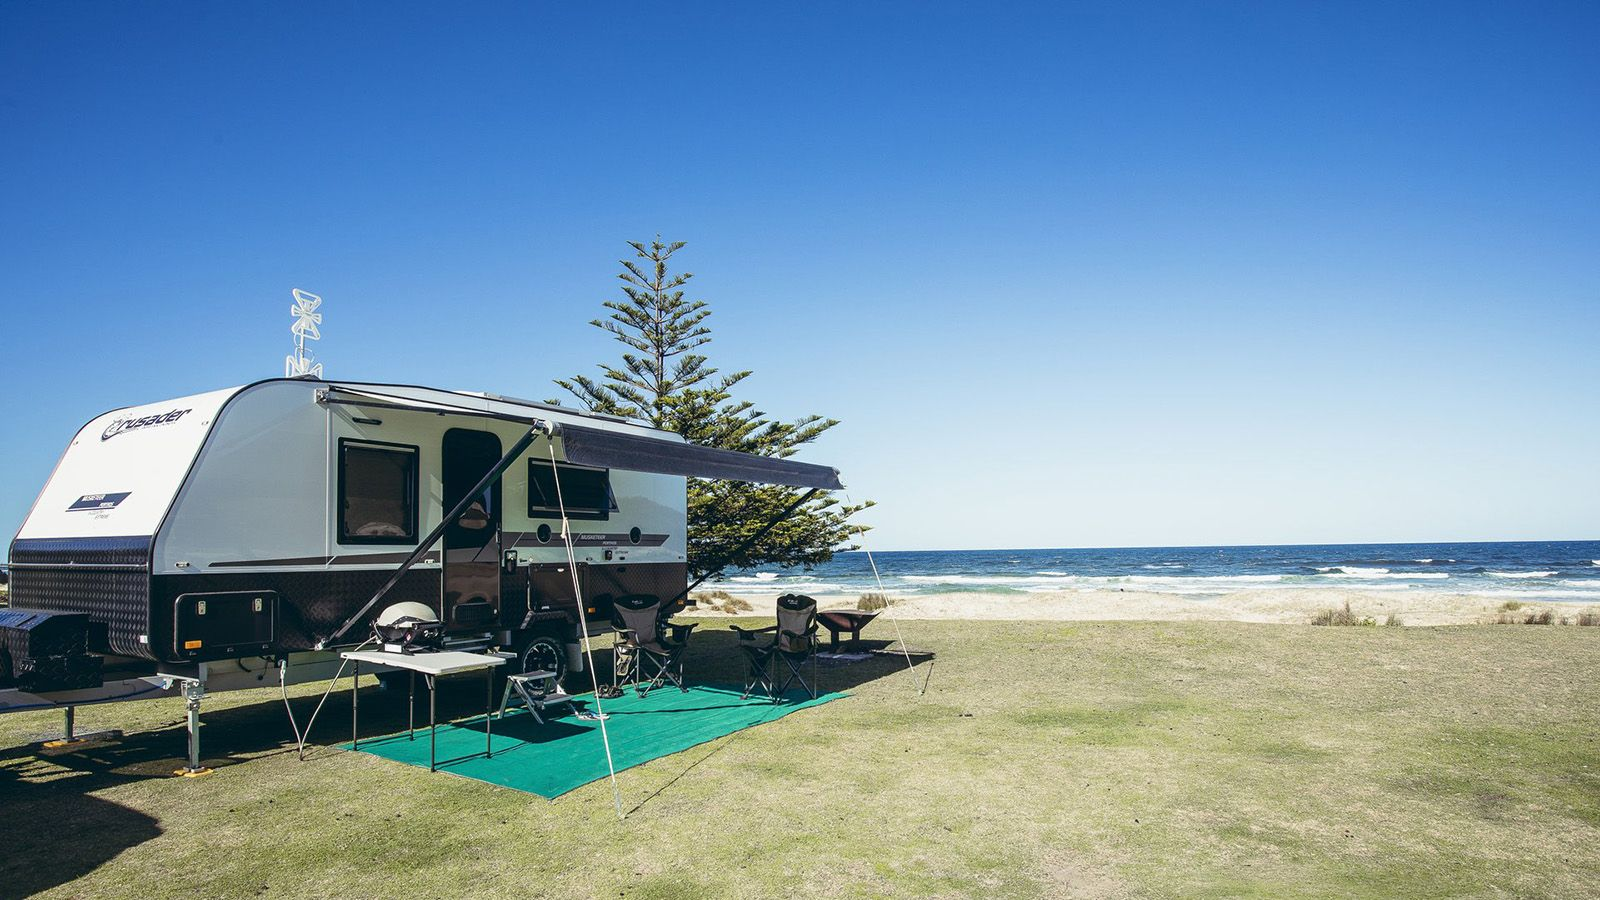 A caravan at a beachside camping ground banner image